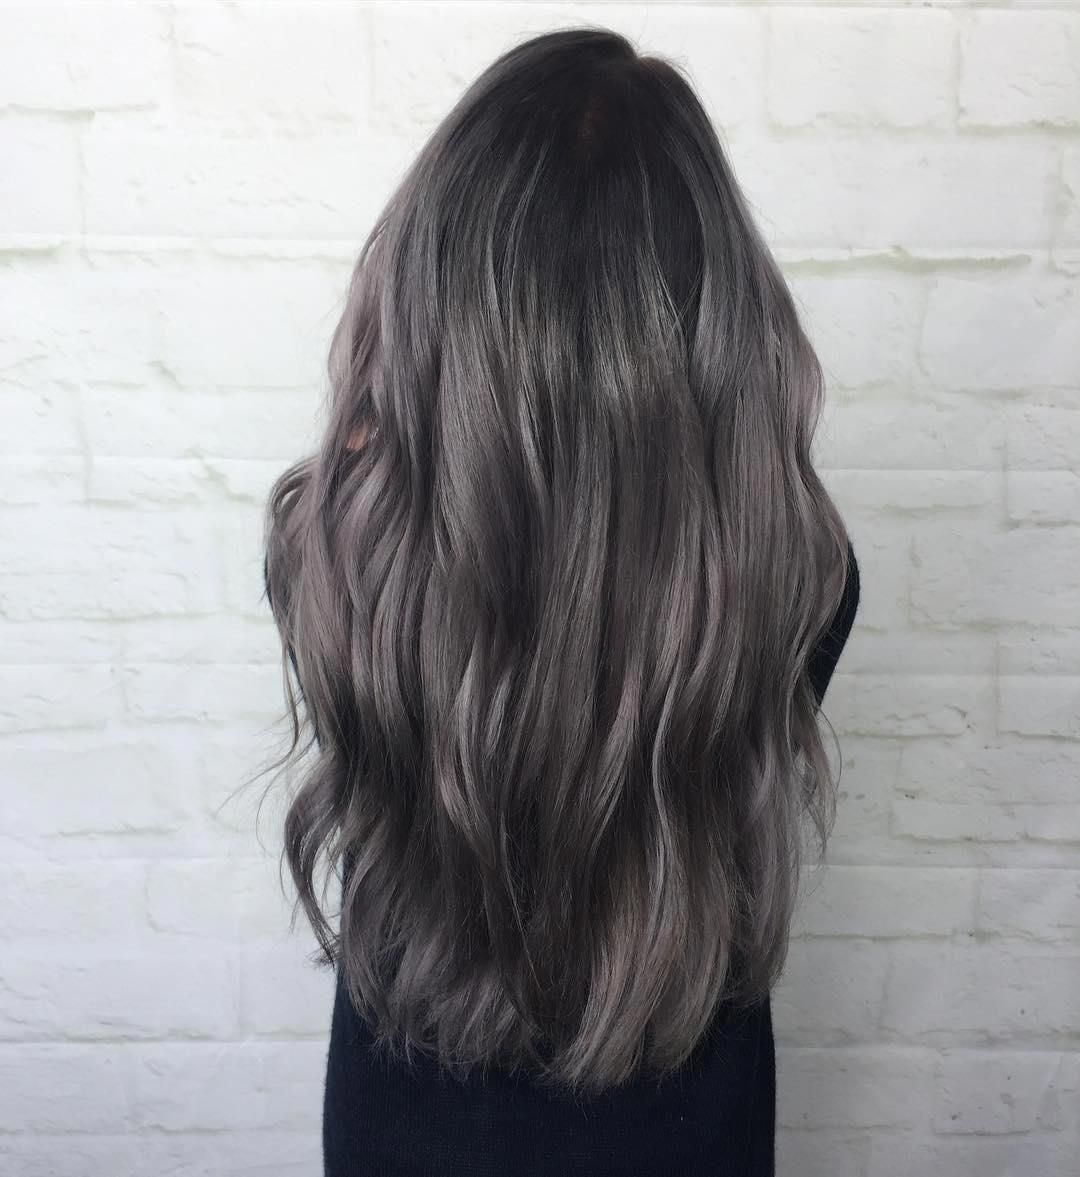 Dark Smoky Grey Aveda Hair Color By Aveda Artist Brittany Carven Haircolorgrey Aveda Hair Color Silver Hair Color Aveda Hair